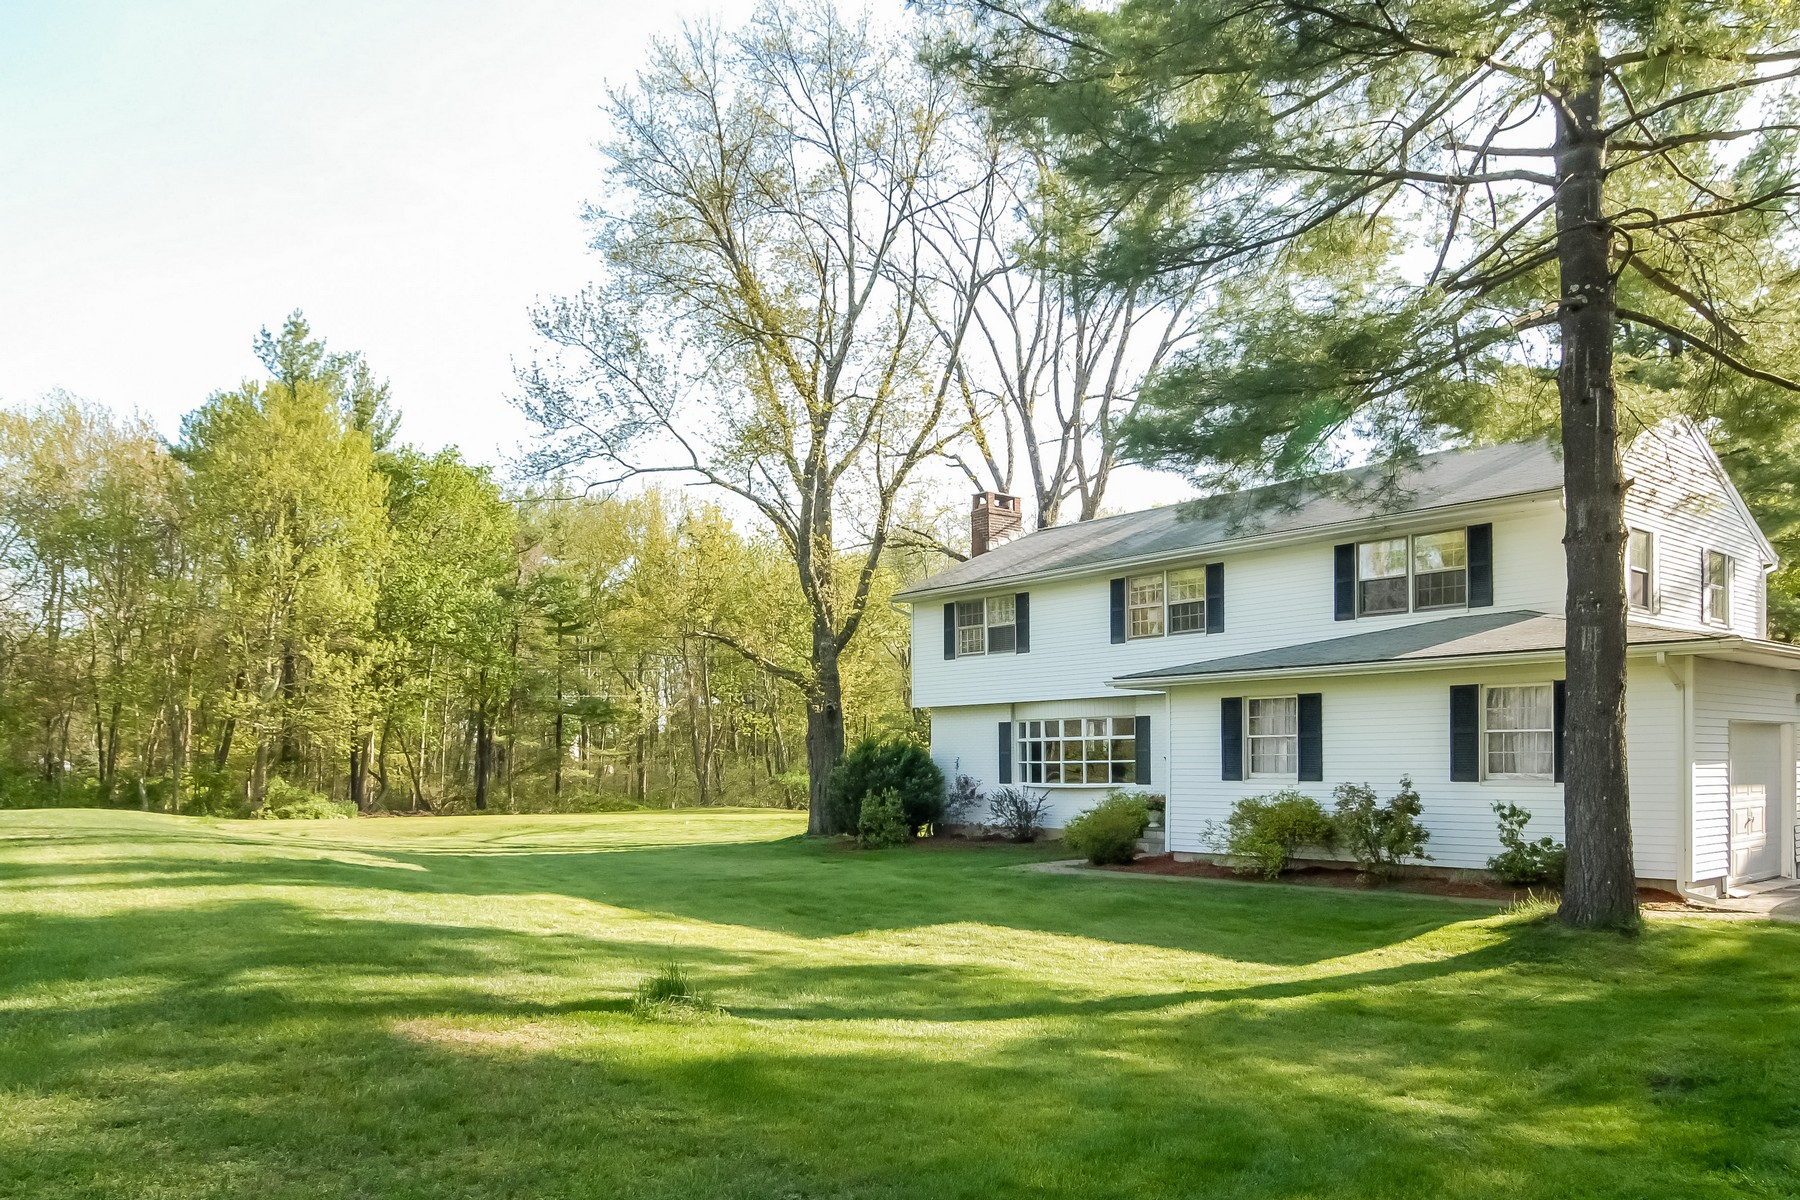 Single Family Home for Sale at Lovingly Updated Colonial 7 Bridle Trail Ridgefield, Connecticut, 06877 United States